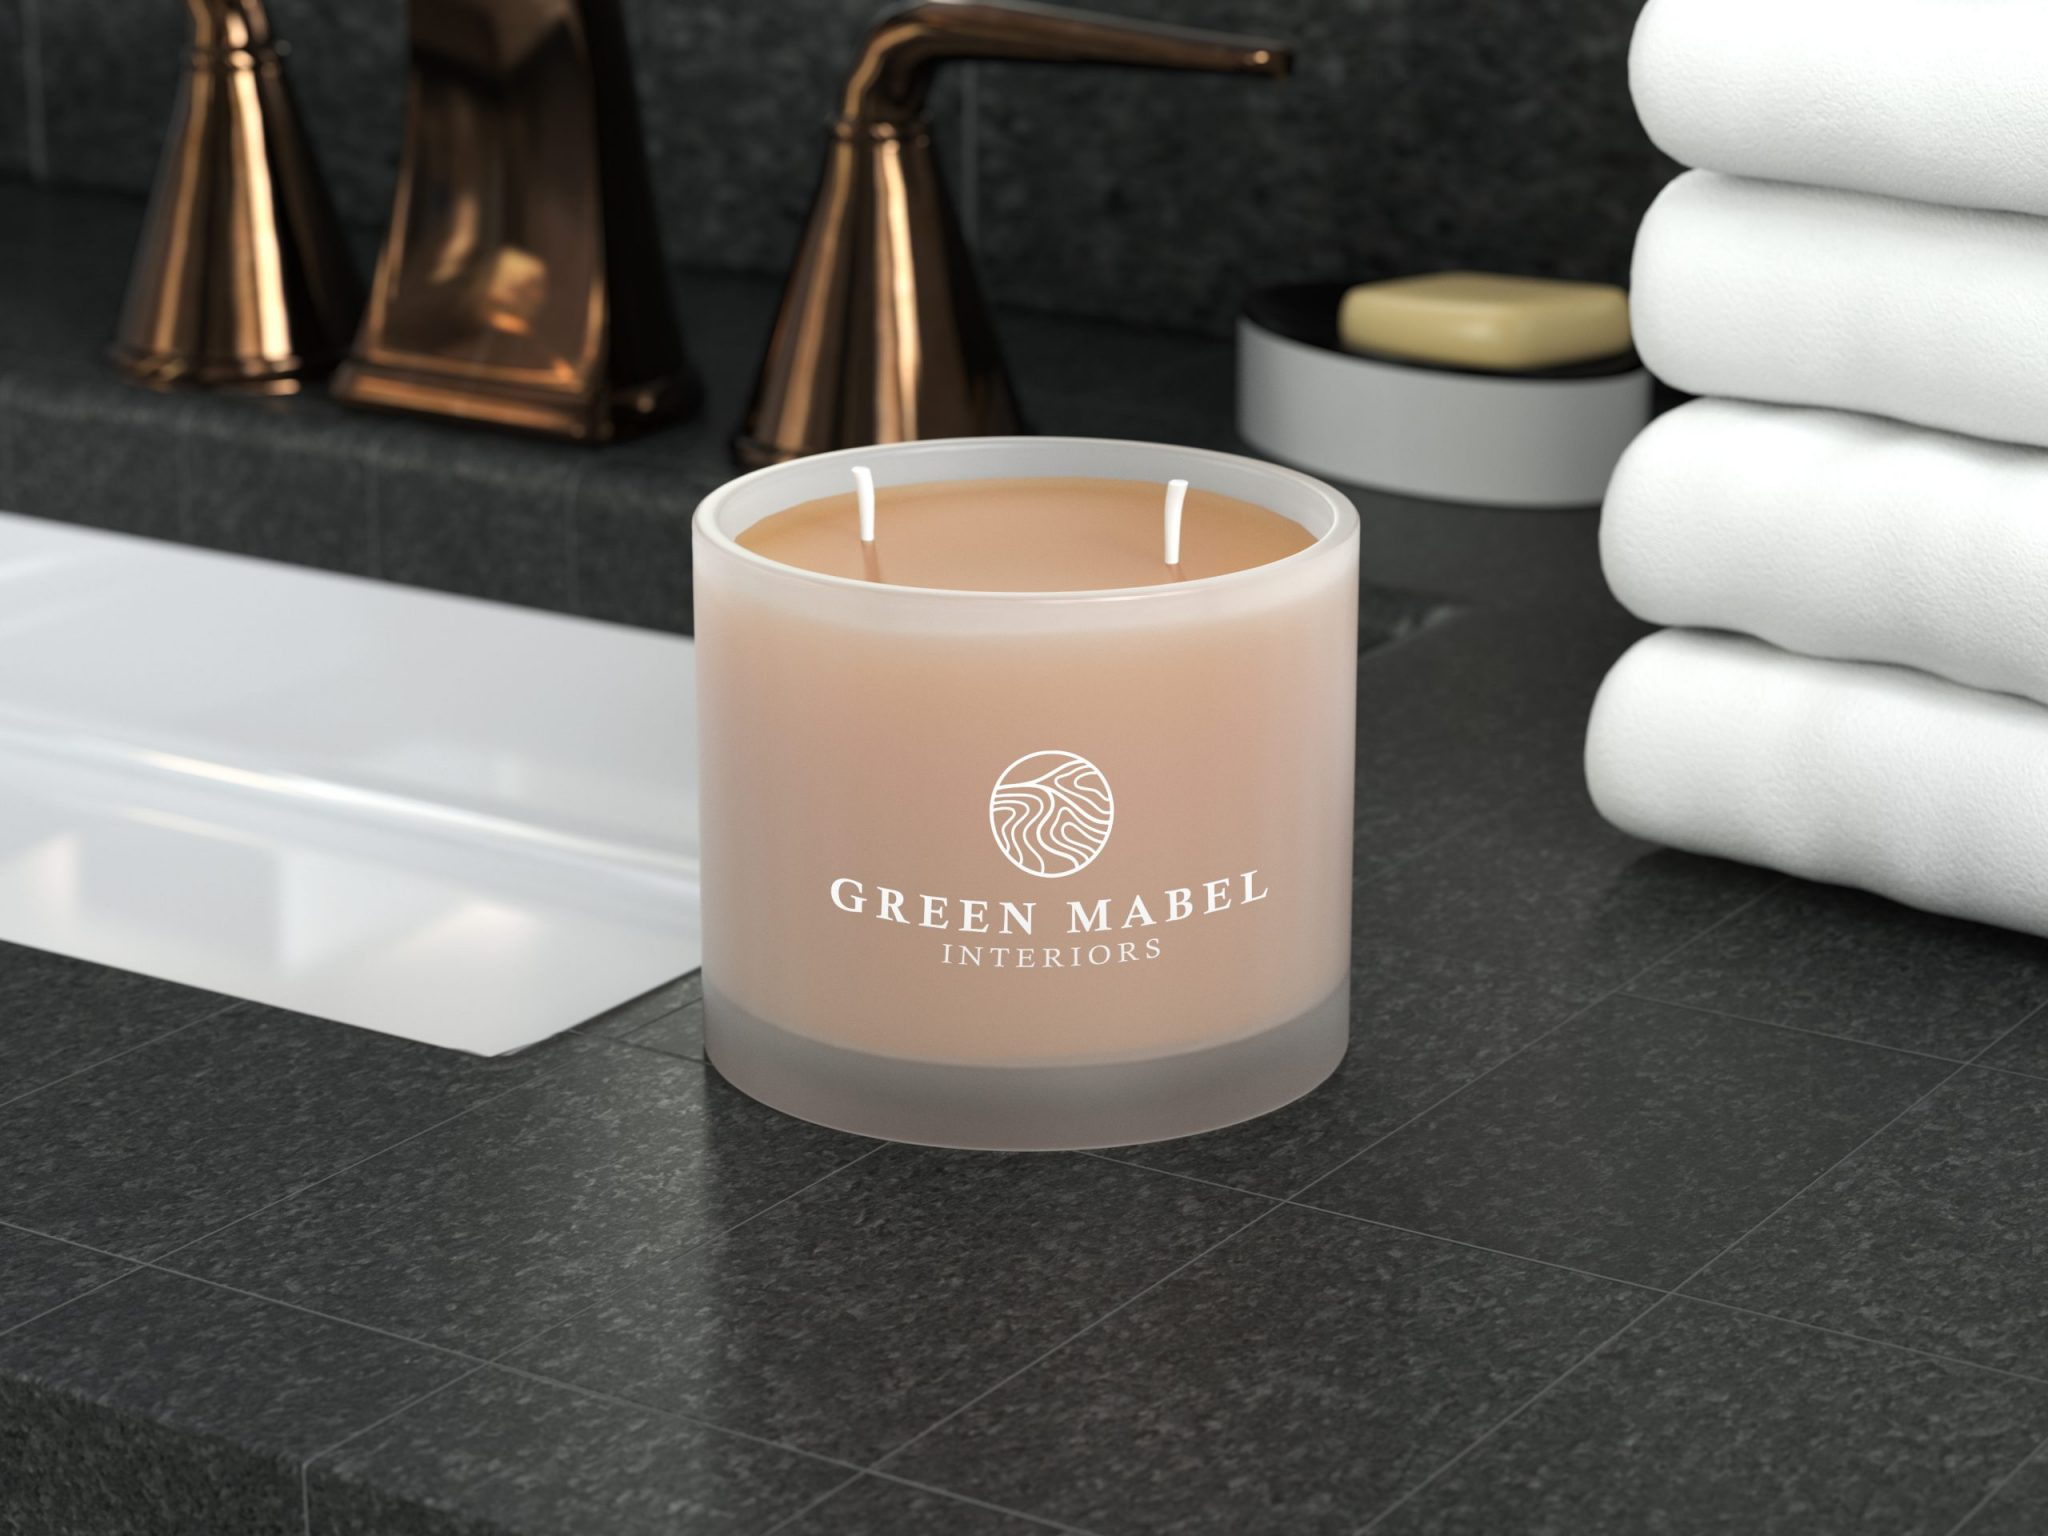 Green Mabel Interiors Candle scaled